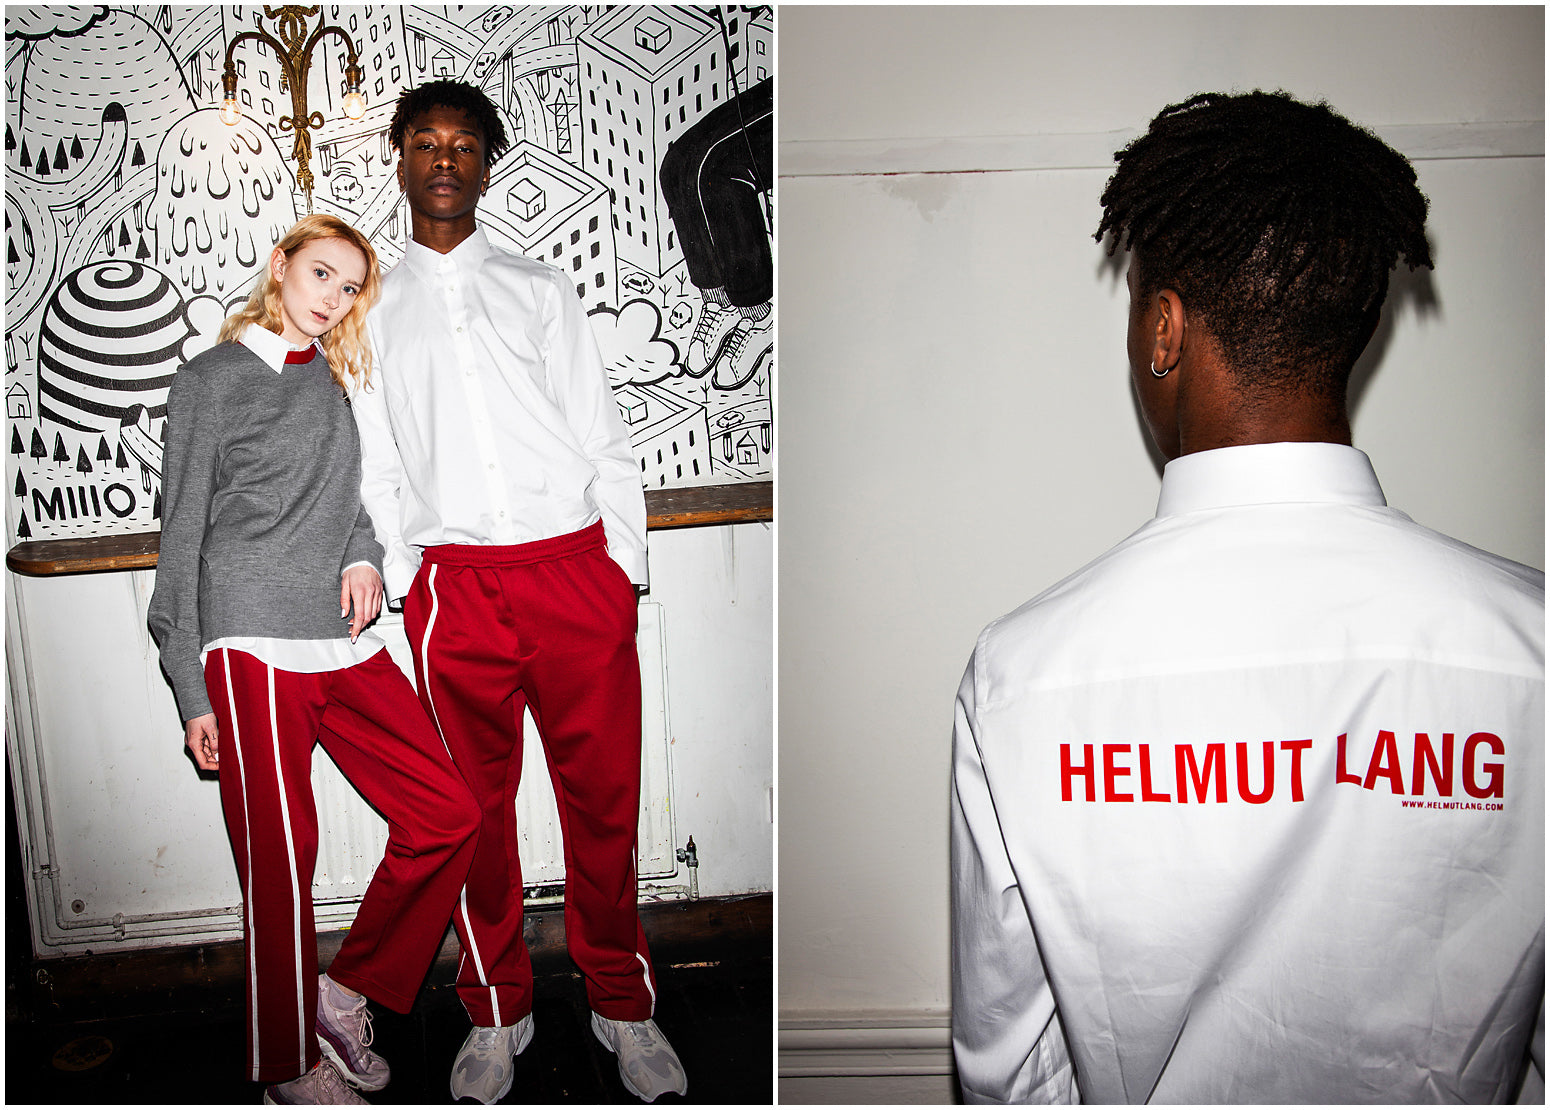 9aeb1c8a4f0 Shop the SS19 Helmut Lang collection here.